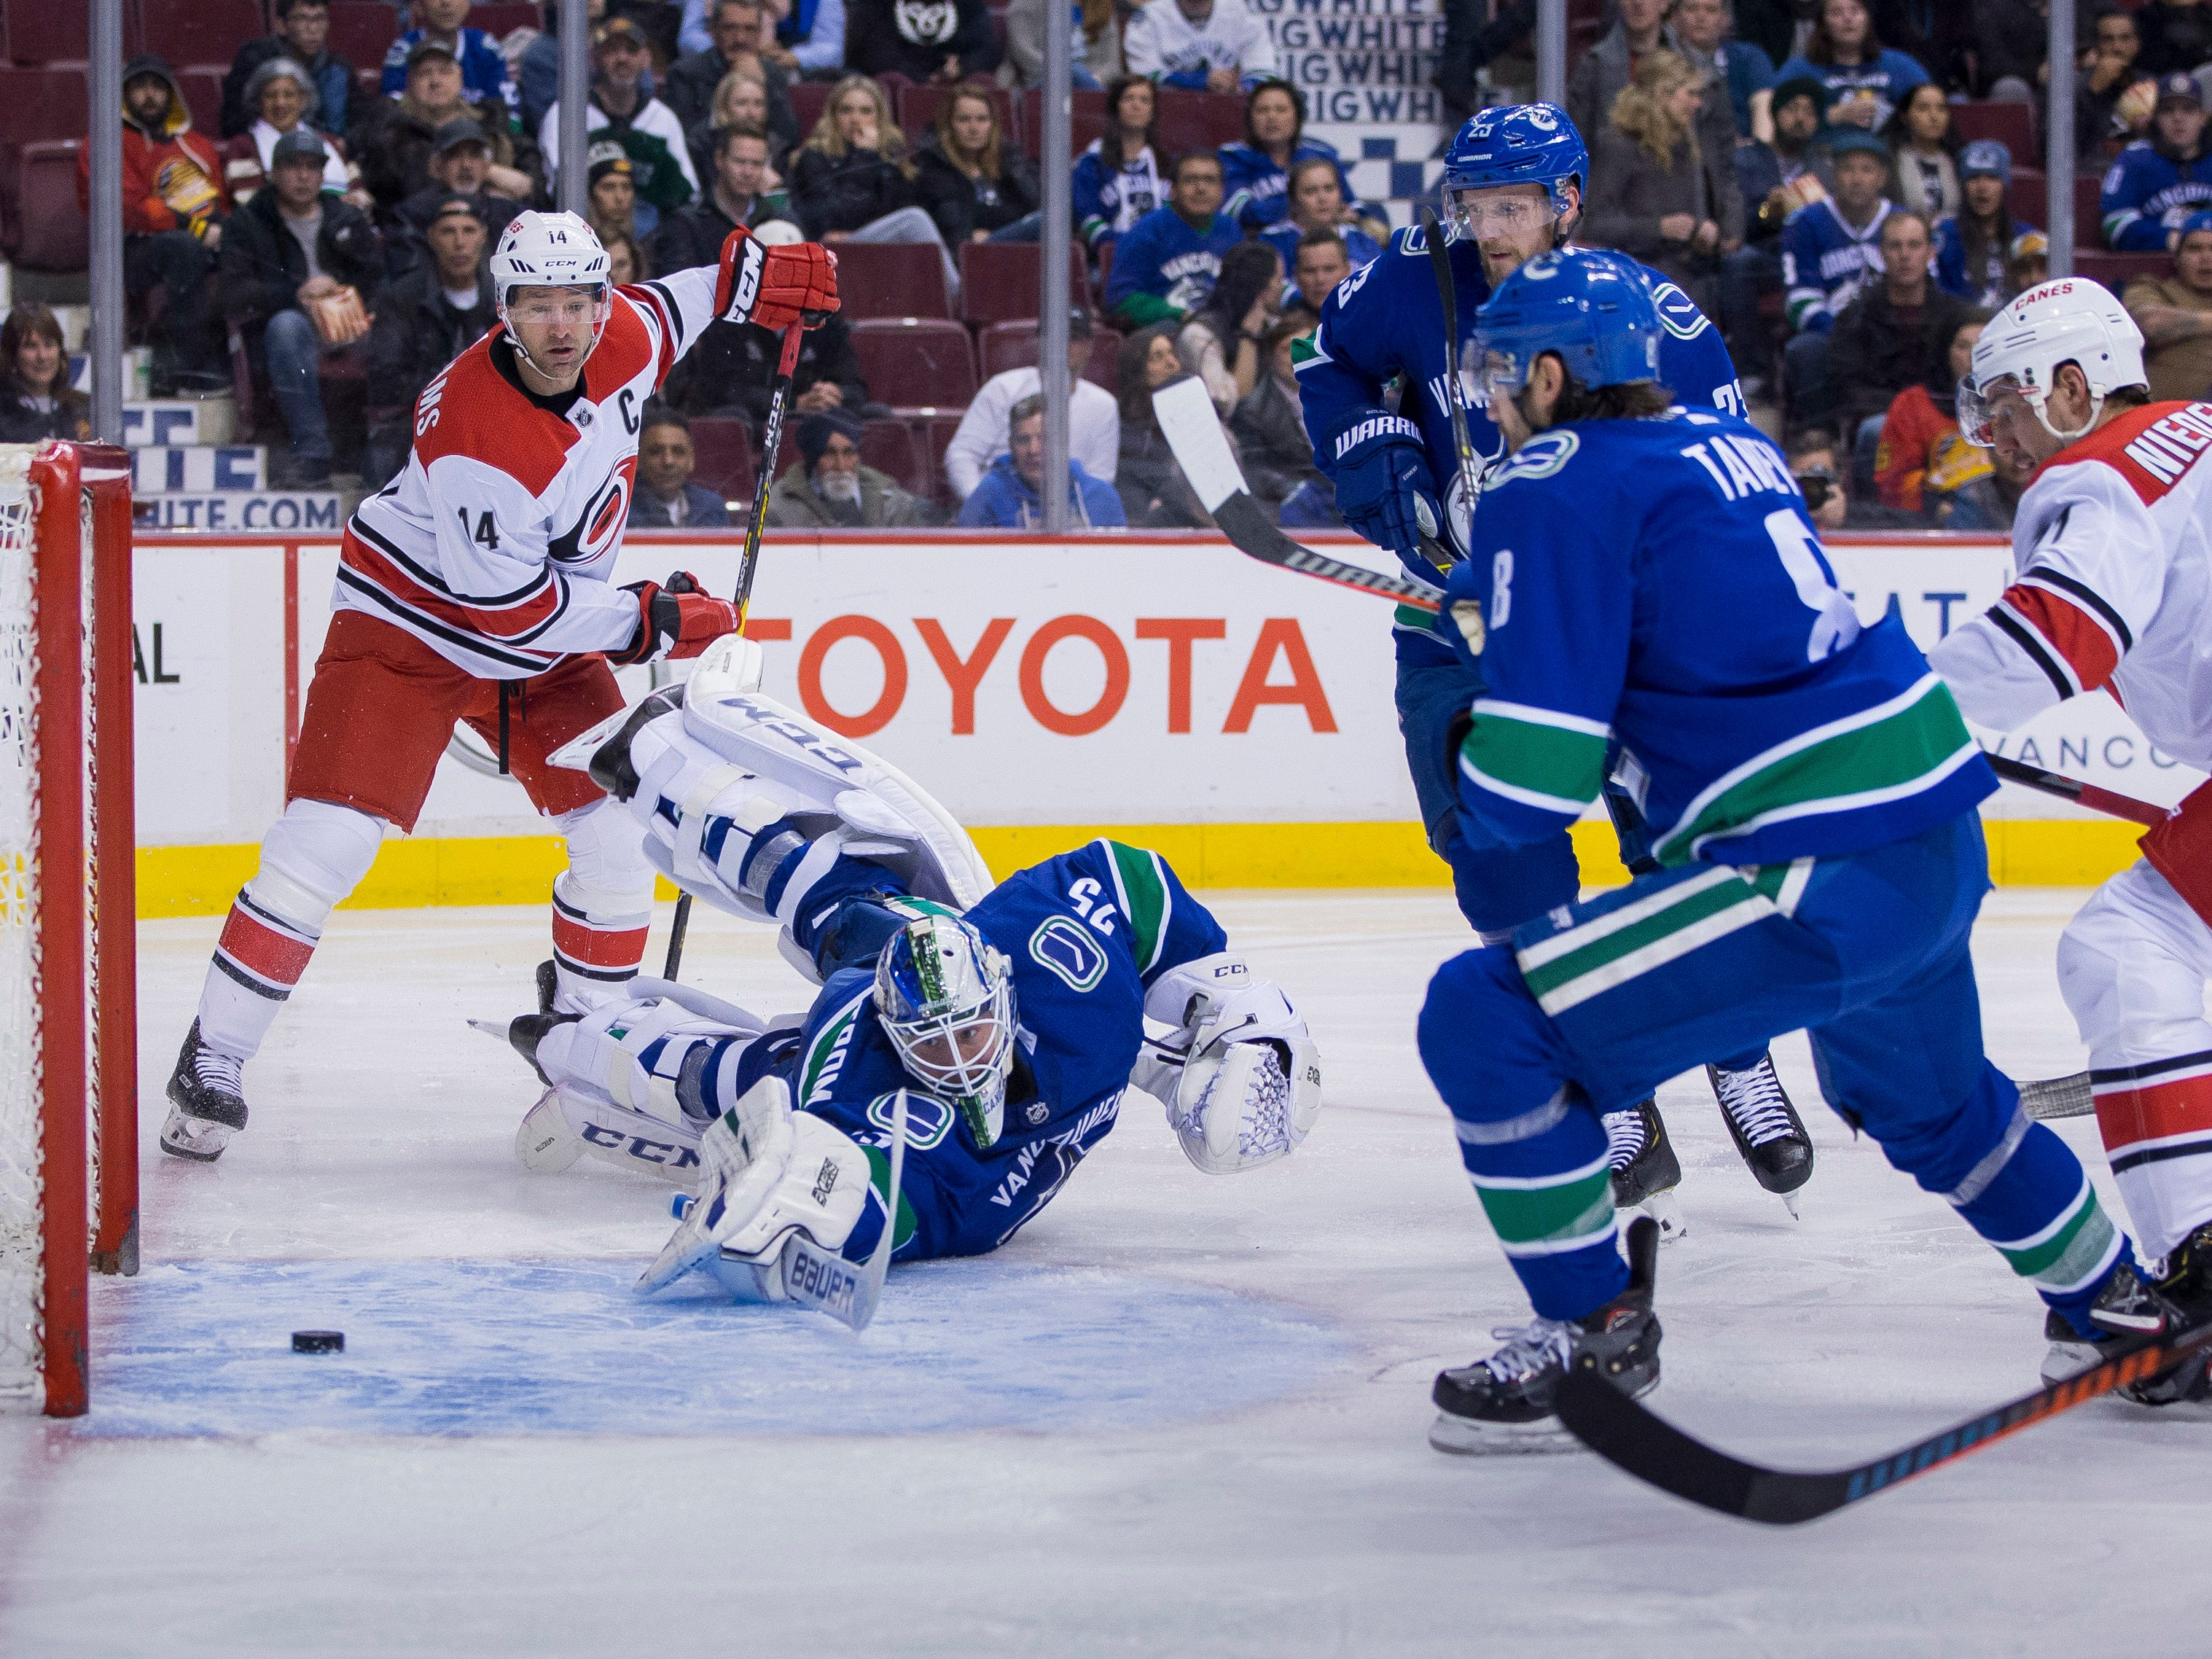 Jan. 23: Carolina Hurricanes forward Justin Williams (14) watches a shot from forward Nino Niederreiter (21) go past Vancouver Canucks goalie Jacob Markstrom in the second period at Rogers Arena. Carolina won the game, 5-2.